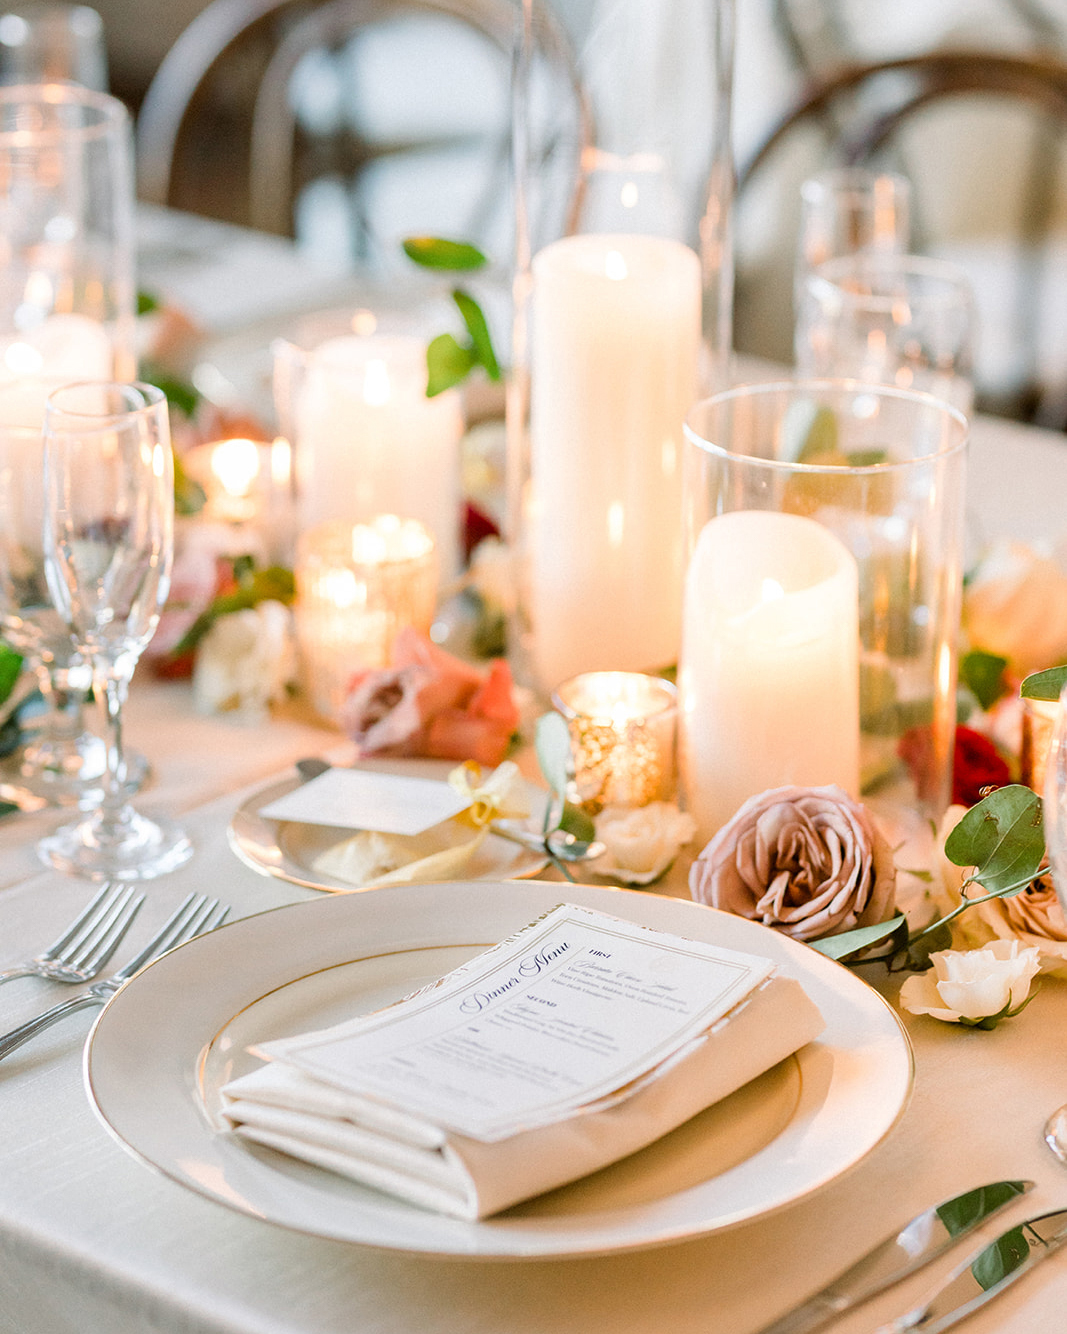 elegant white and gold place setting with berry tone decorations